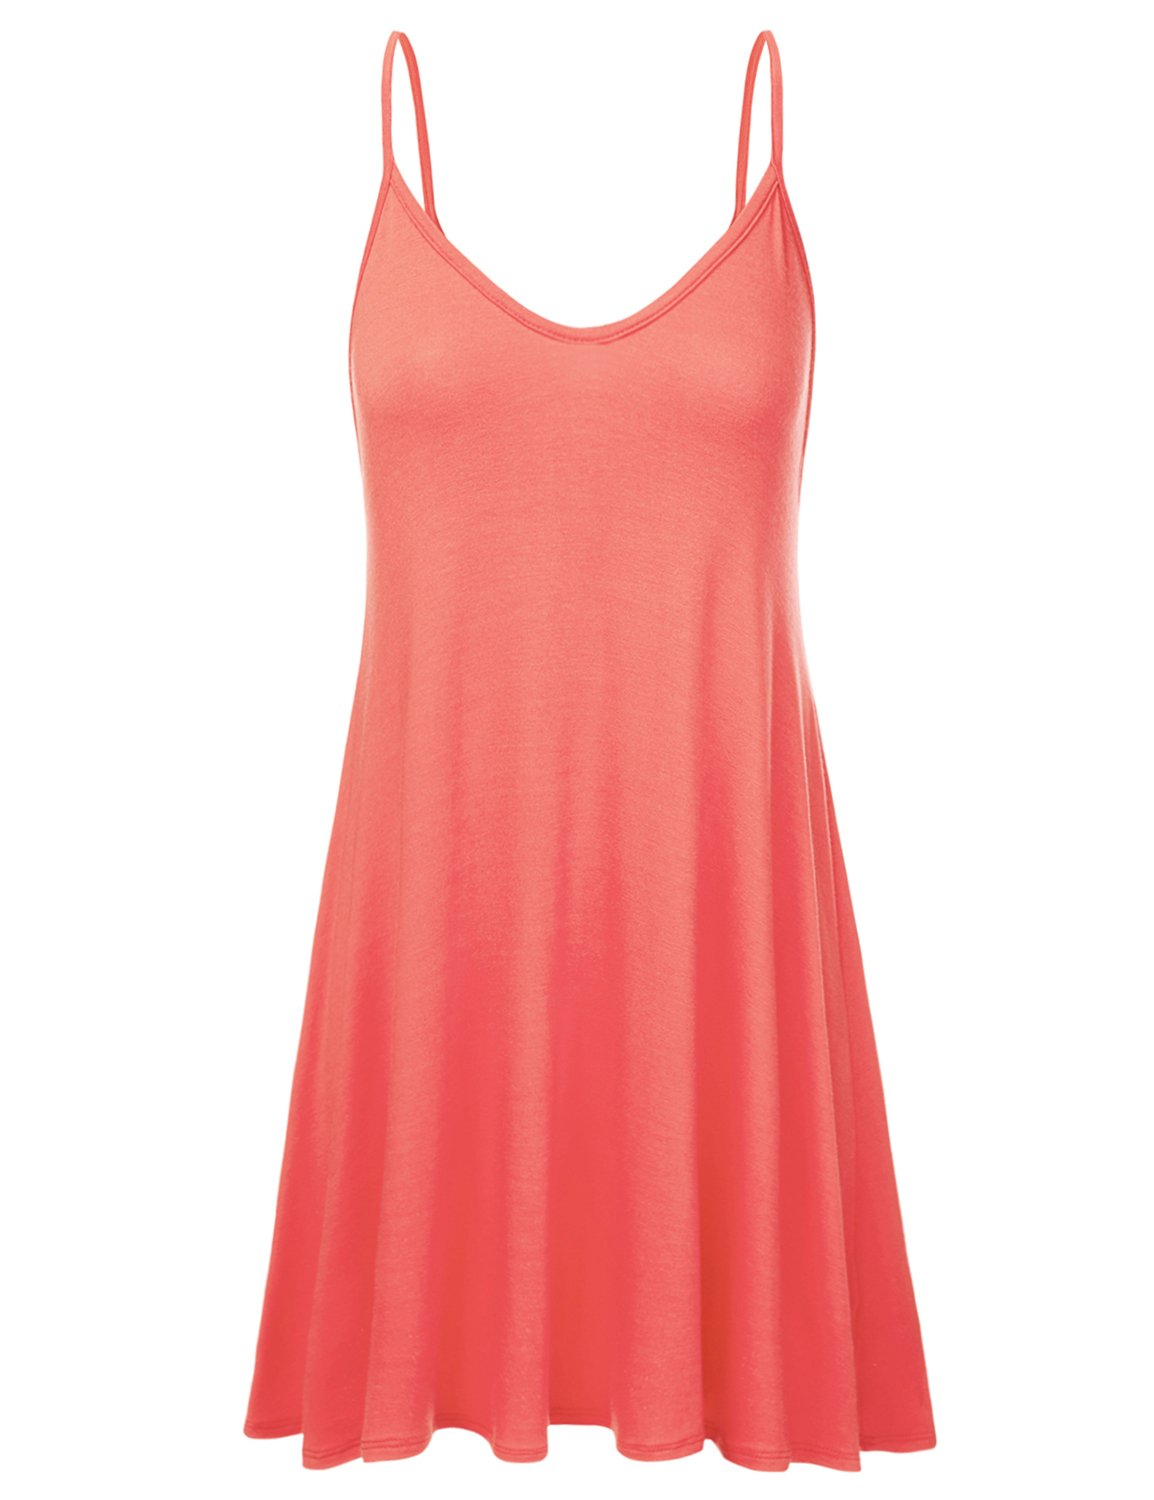 NINEXIS Women's Loose Fit Thin Strap Flared Dress CORAL XL